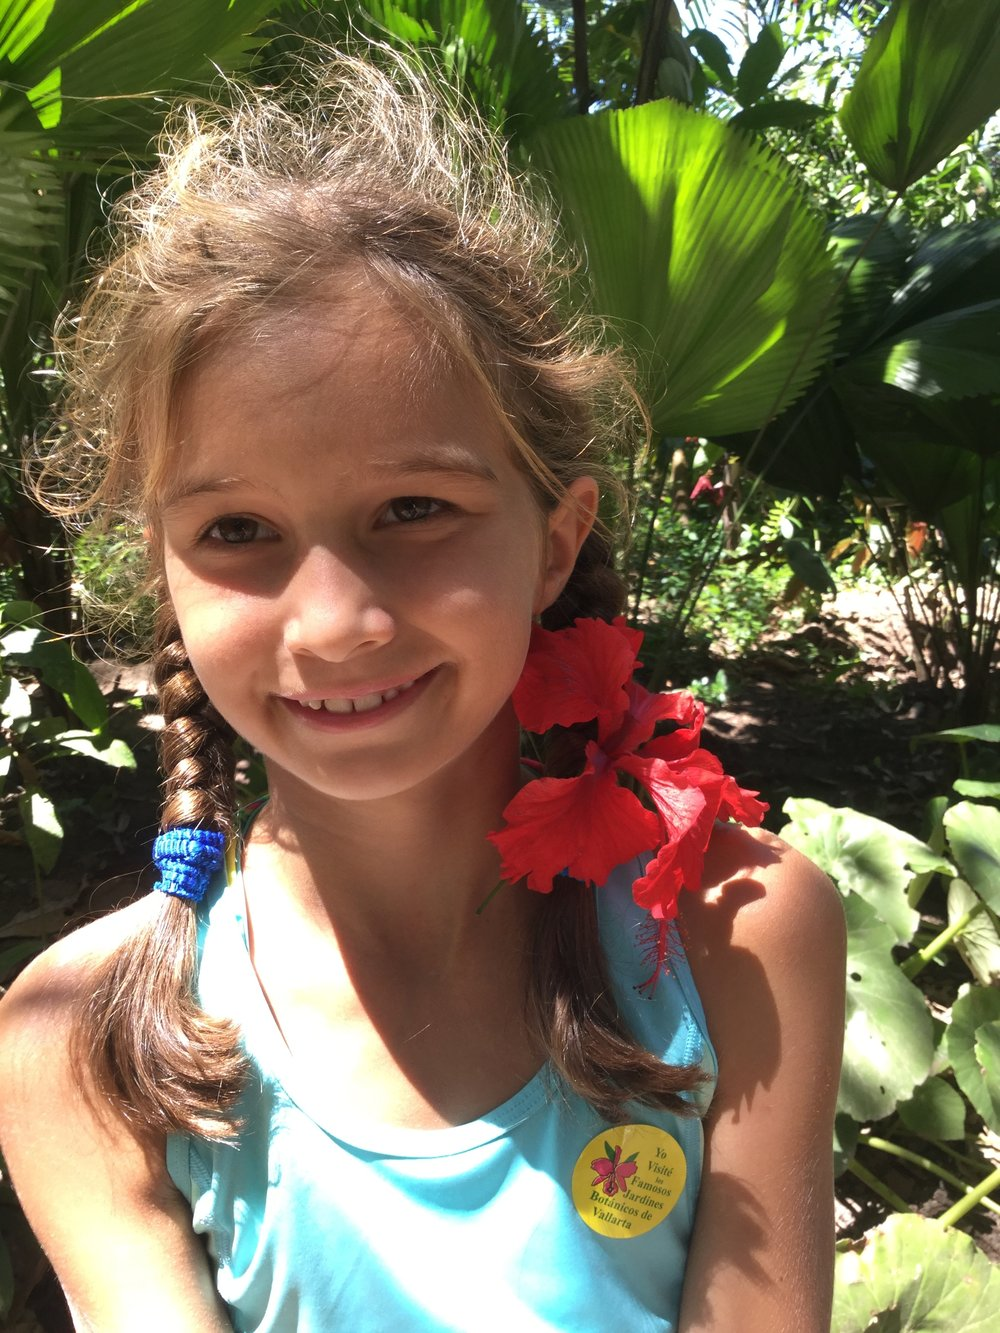 Lili was given a hibiscus for her hair.